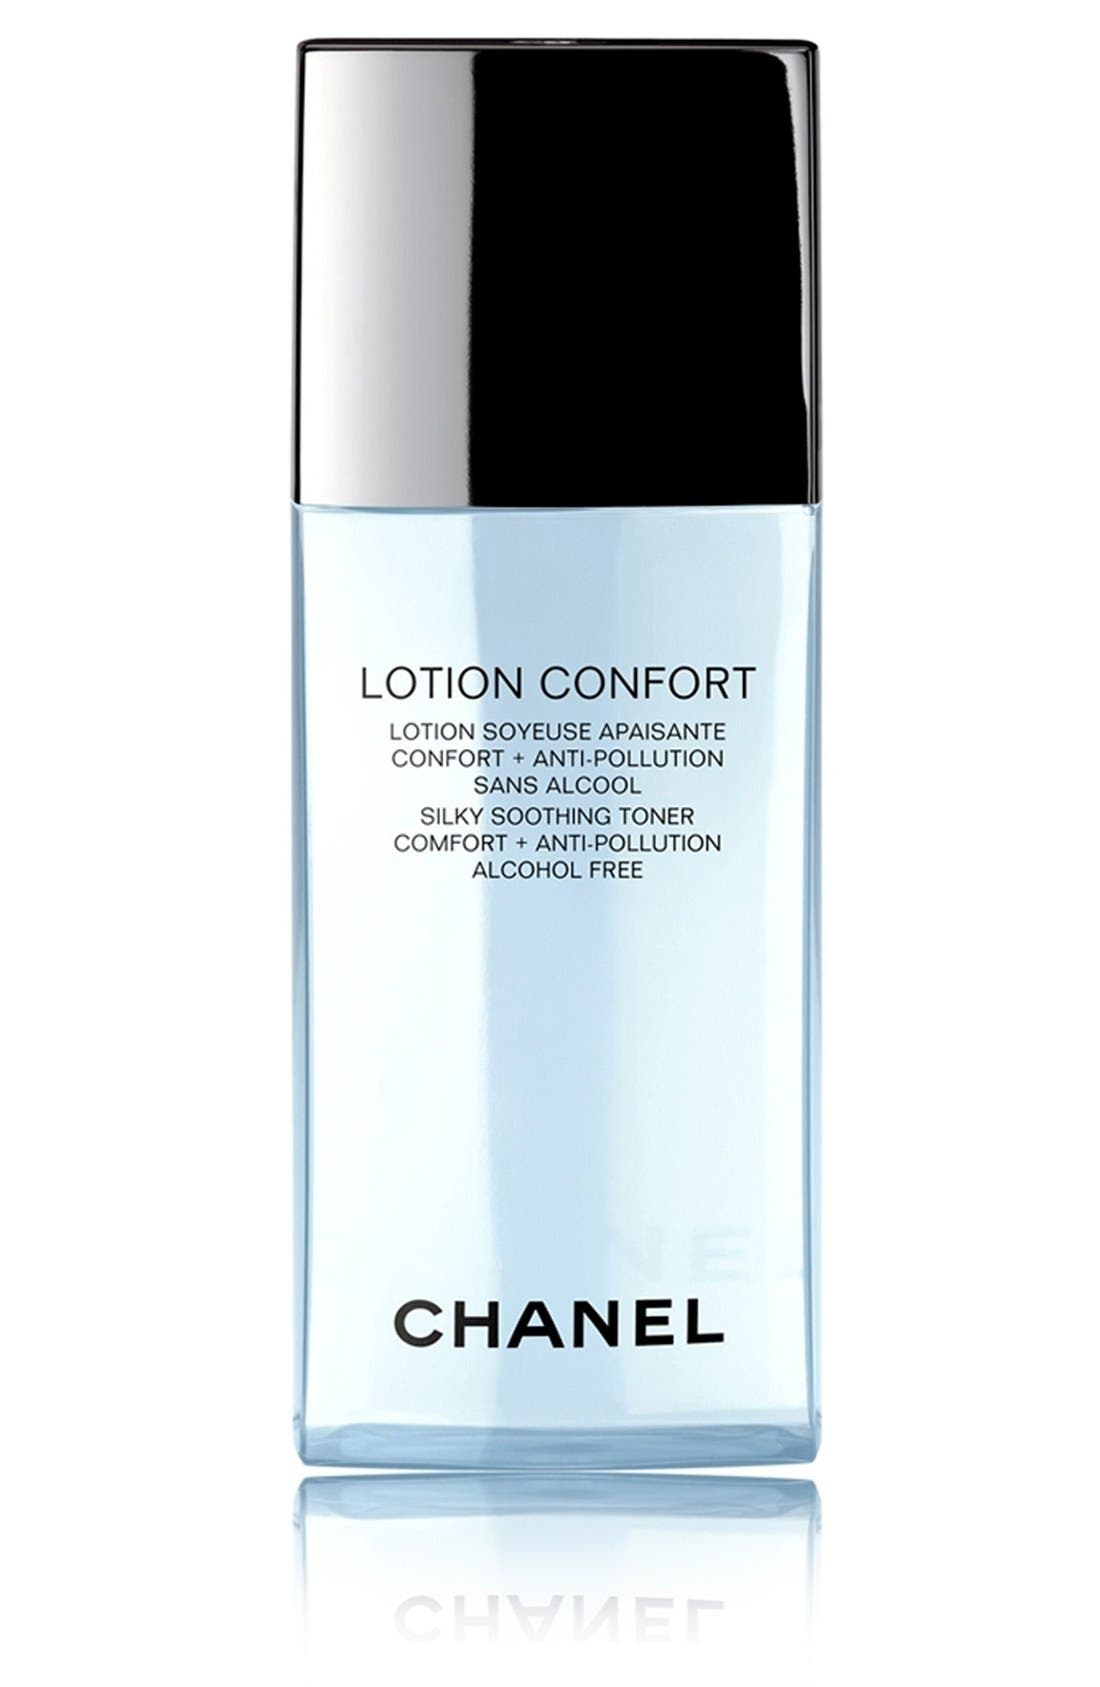 LOTION CONFORT<br />Silky Soothing Toner Comfort + Anti-Pollution,                             Main thumbnail 1, color,